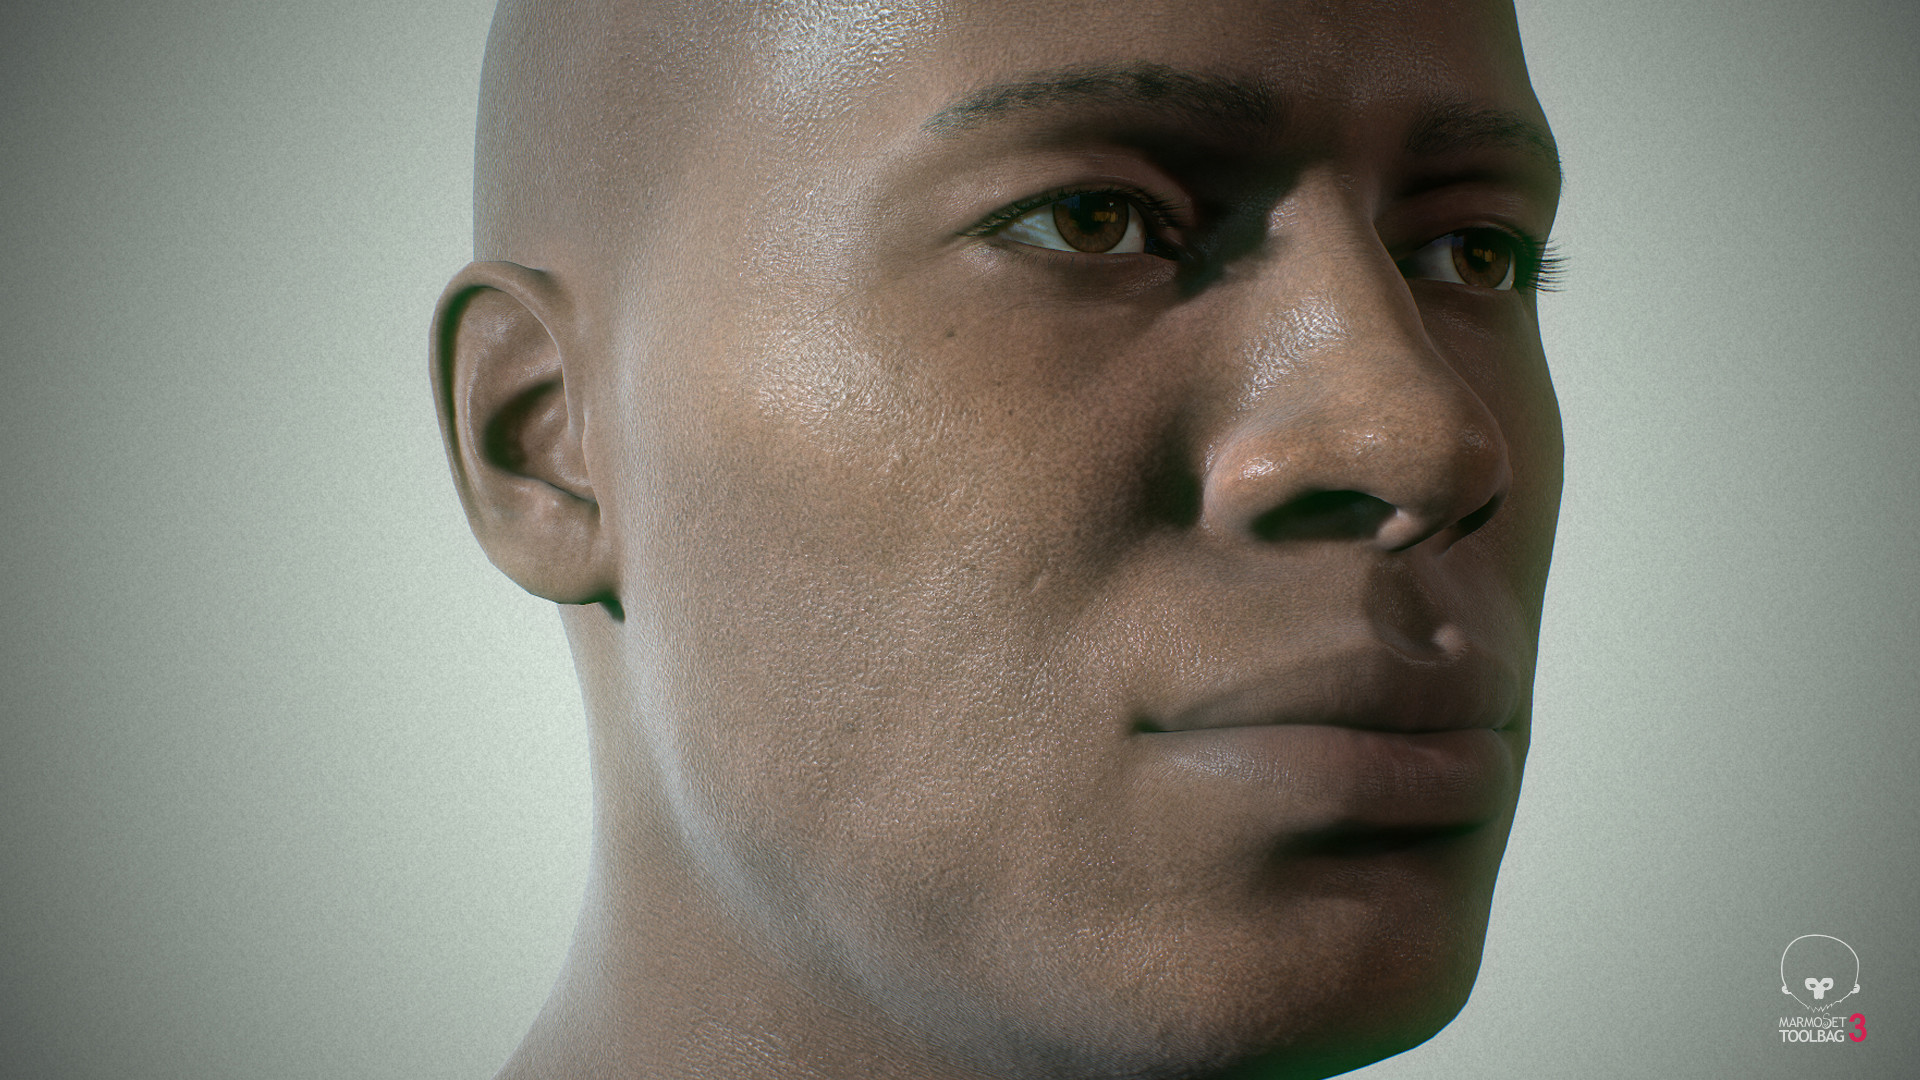 Alex lashko averageblackmale by alexlashko marmoset 14